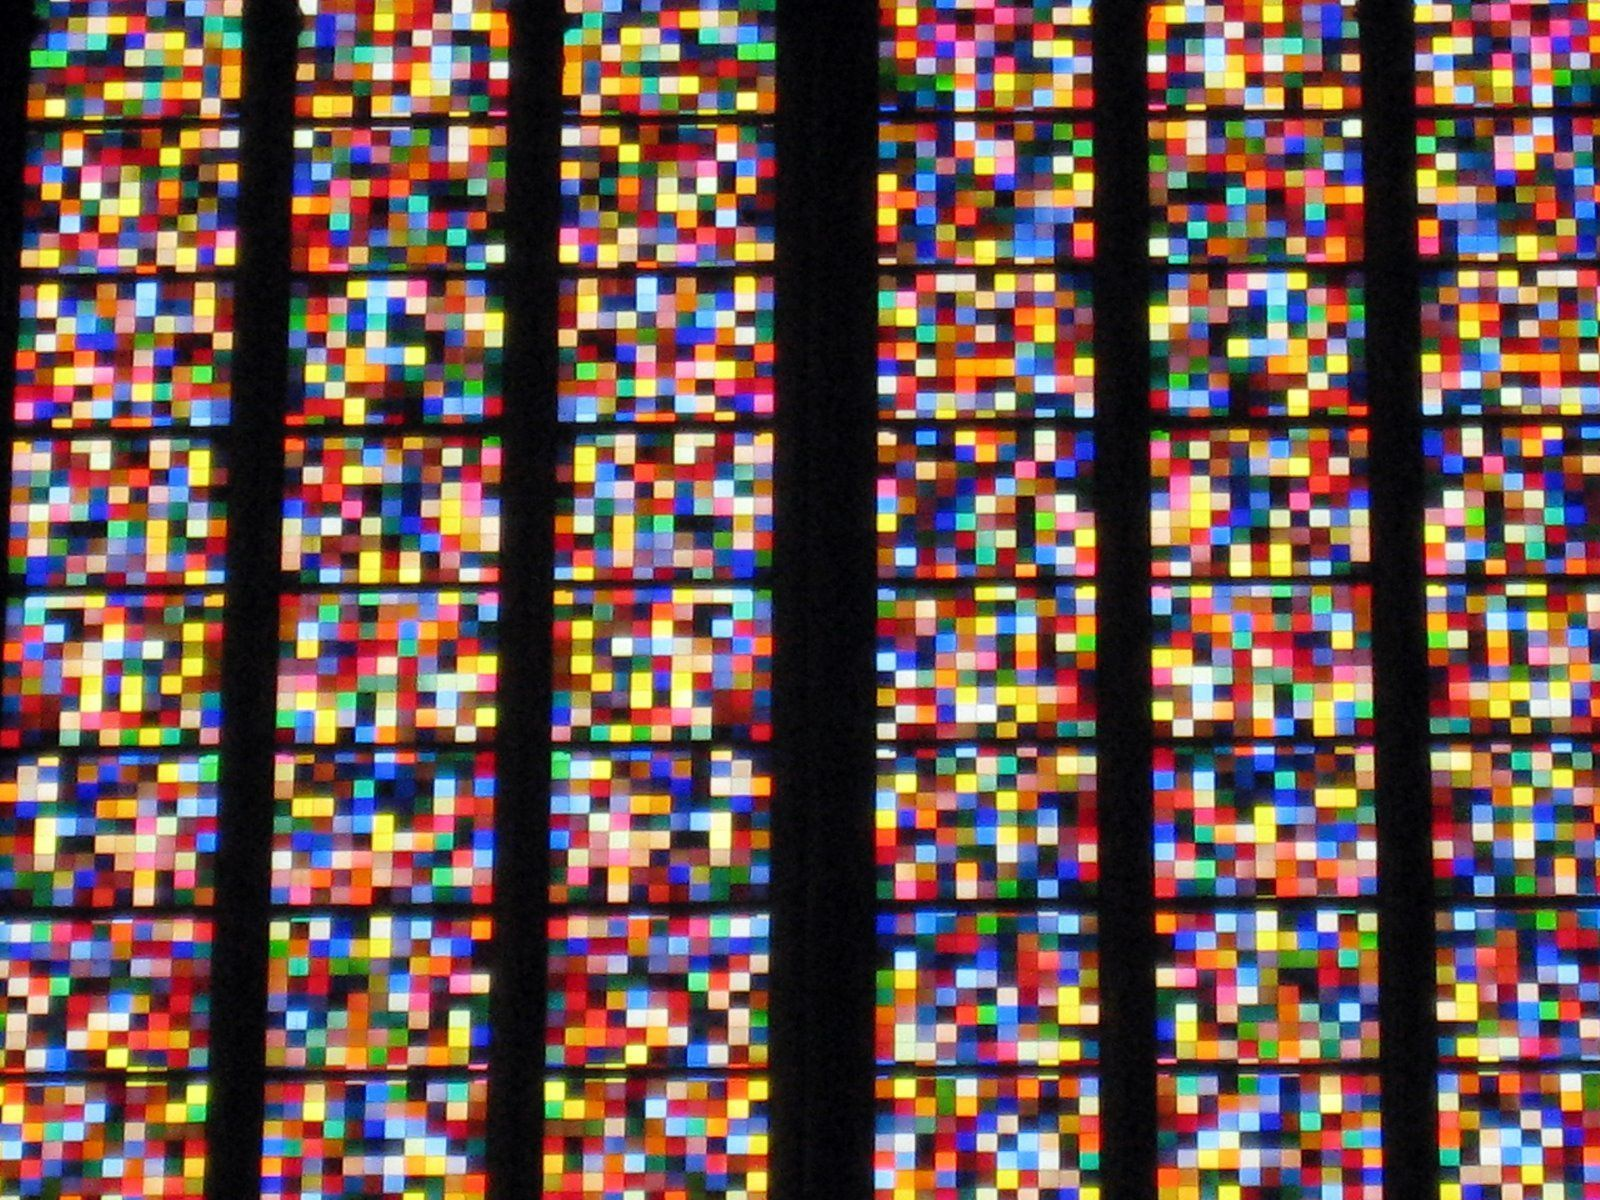 Gerhard Richter Kolner Domfenster Cologne Cathedral Window 2007 11 000 Hand Blown Glass Panels 72 Colors Stained Glass Gerhard Richter Cologne Cathedral